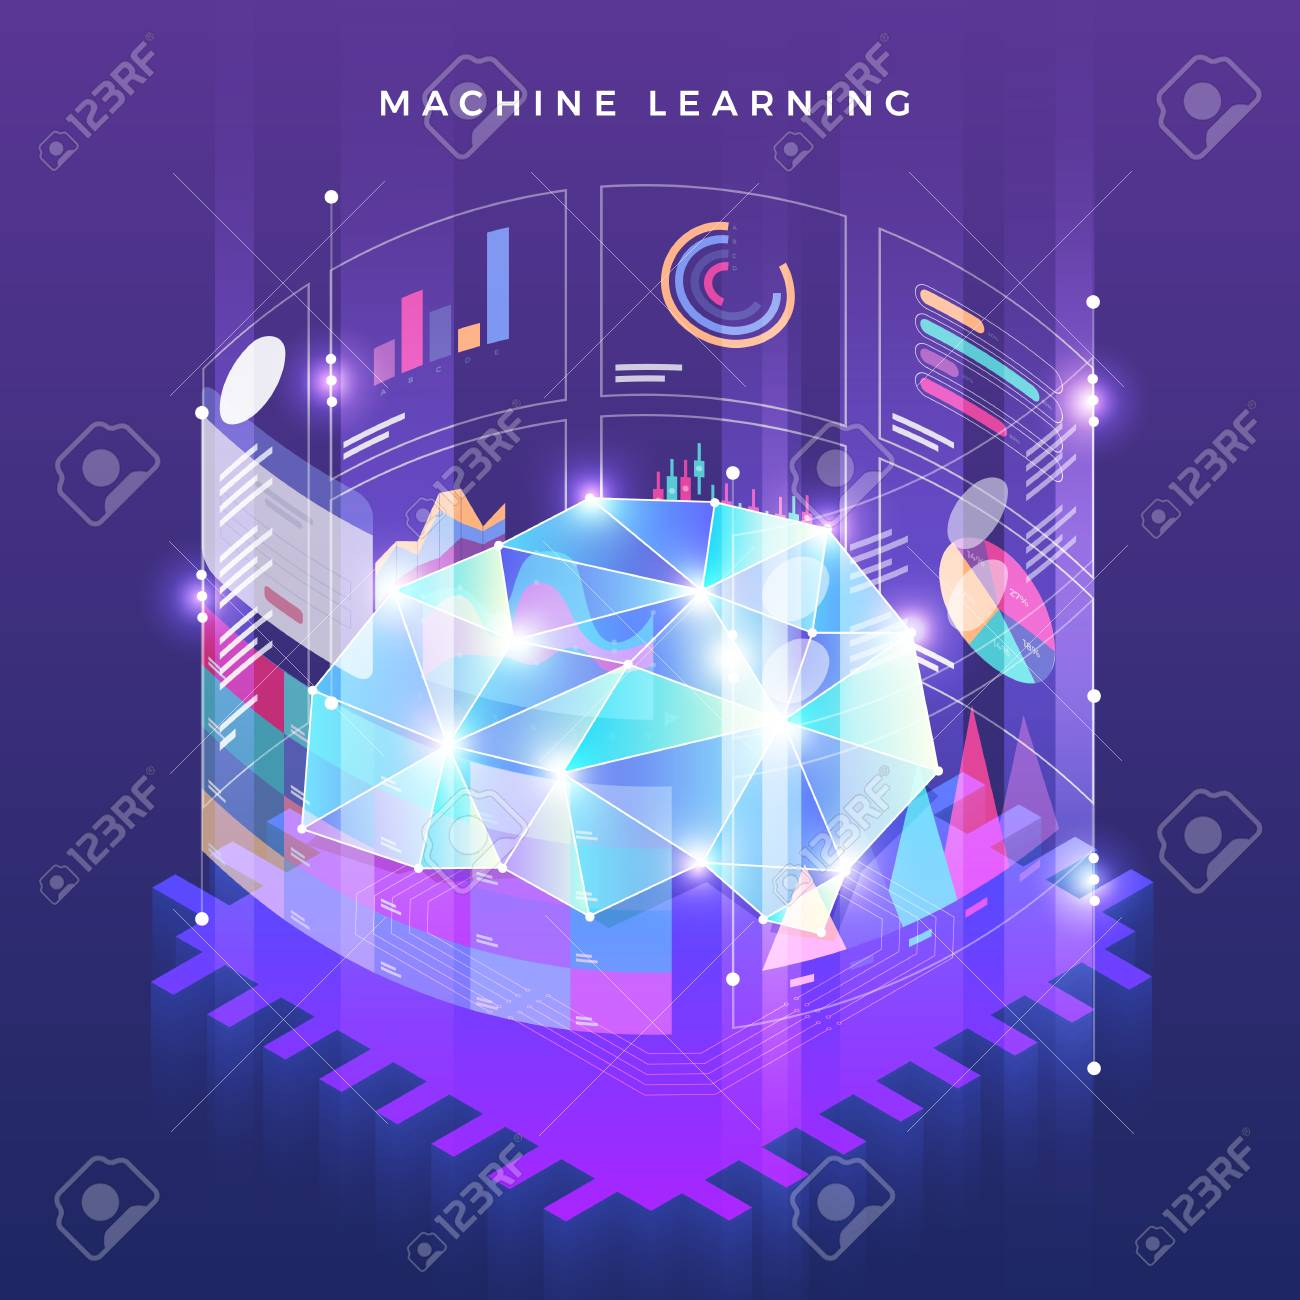 Illustrations Concept Machine Learning Via Artificial Intelligence